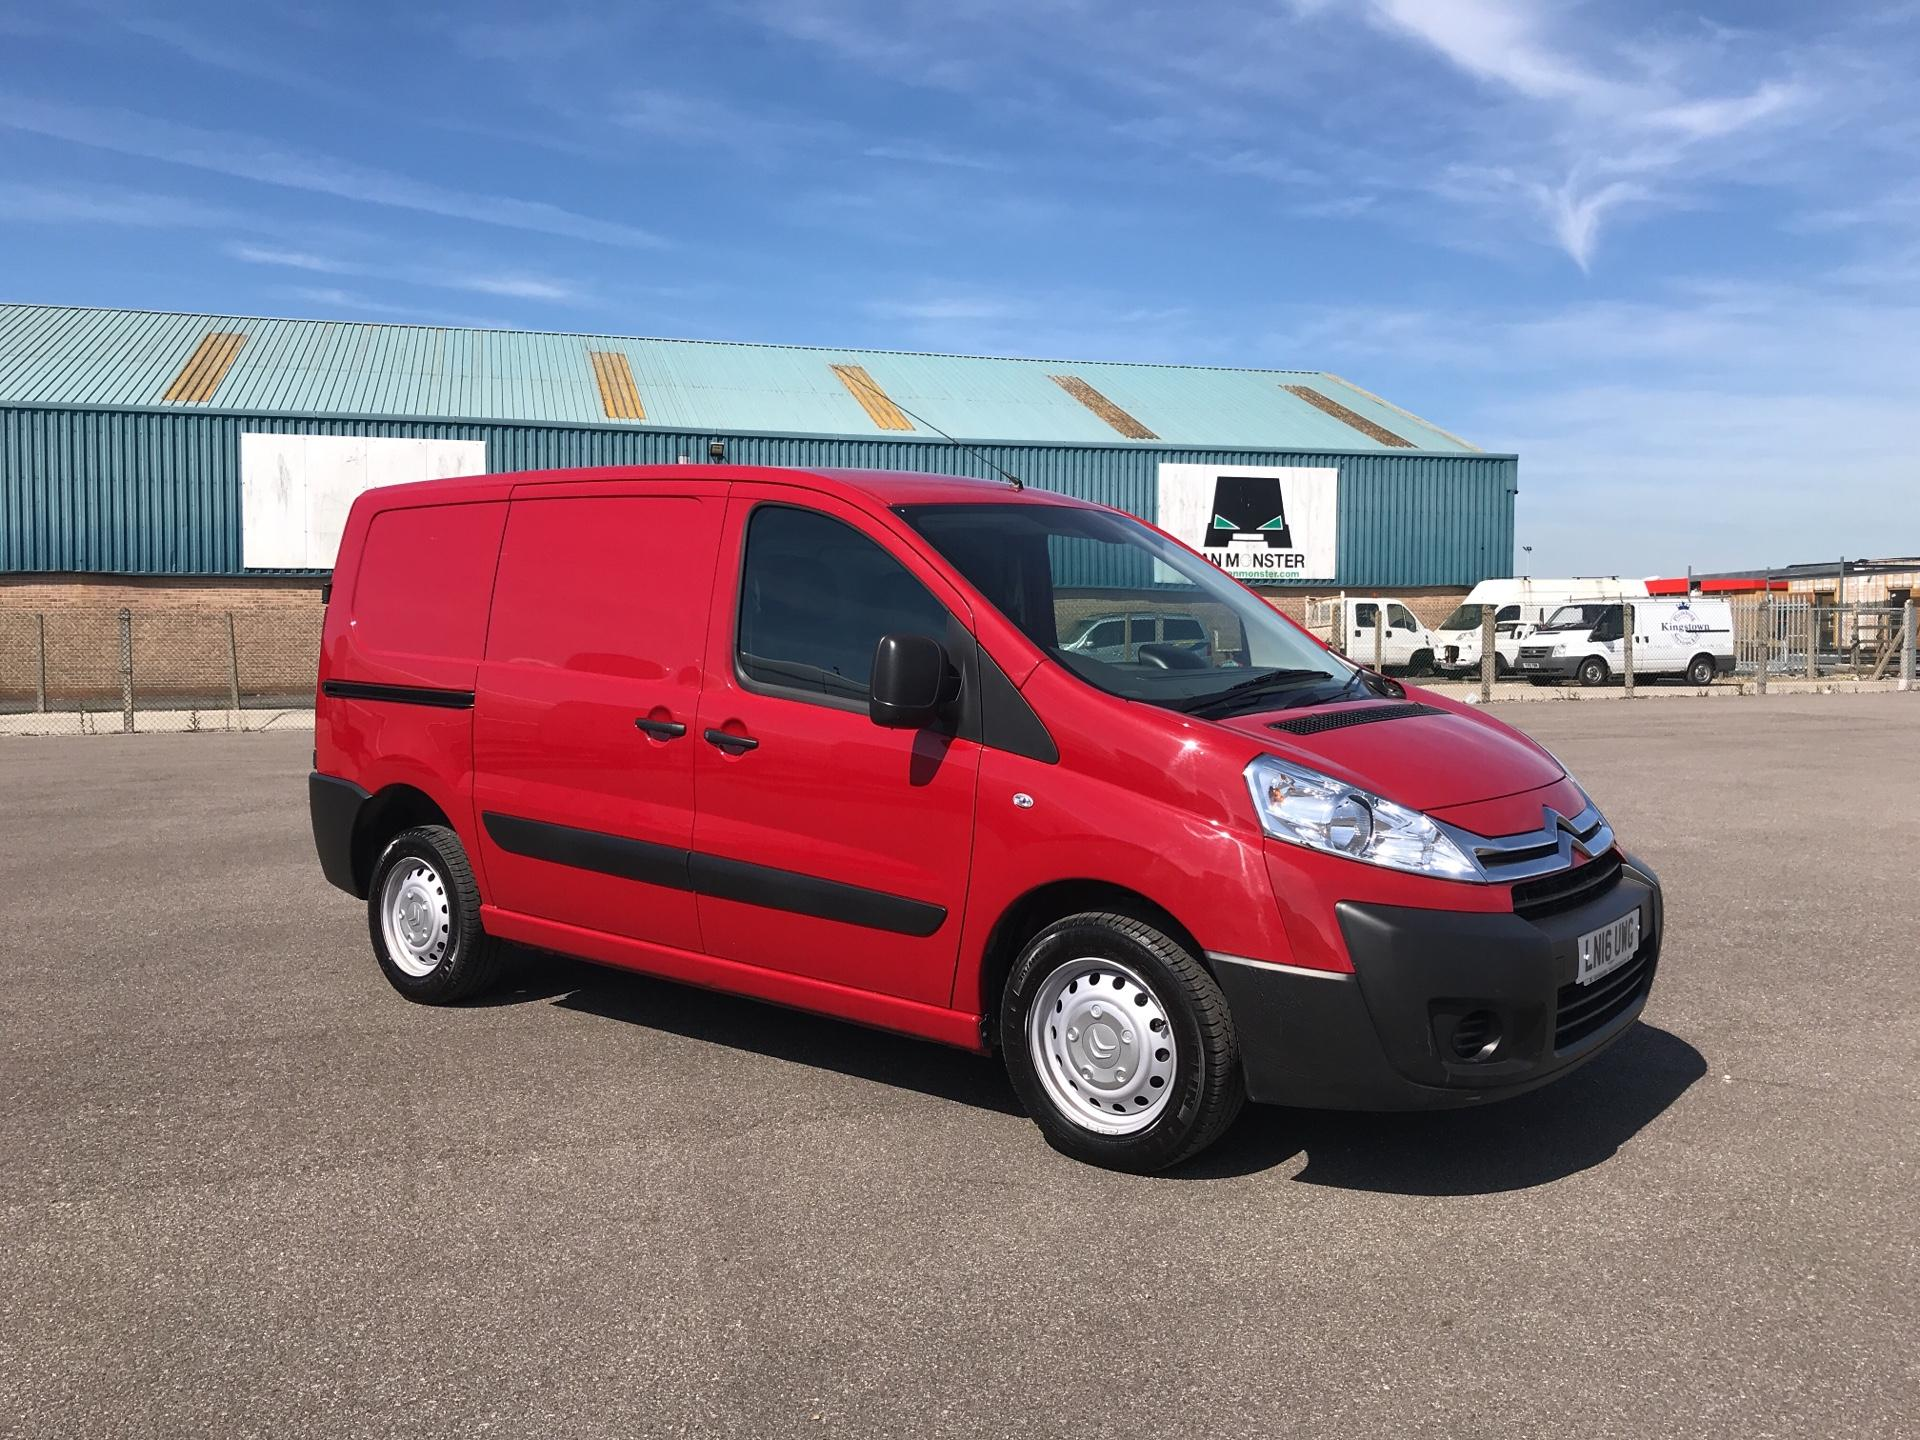 2016 Citroen Dispatch L1 DIESEL 1000 1.6 HDI H1 VAN ENTERPRISE EURO 4/5. AIR CON, SAT NAV (LN16UWG)